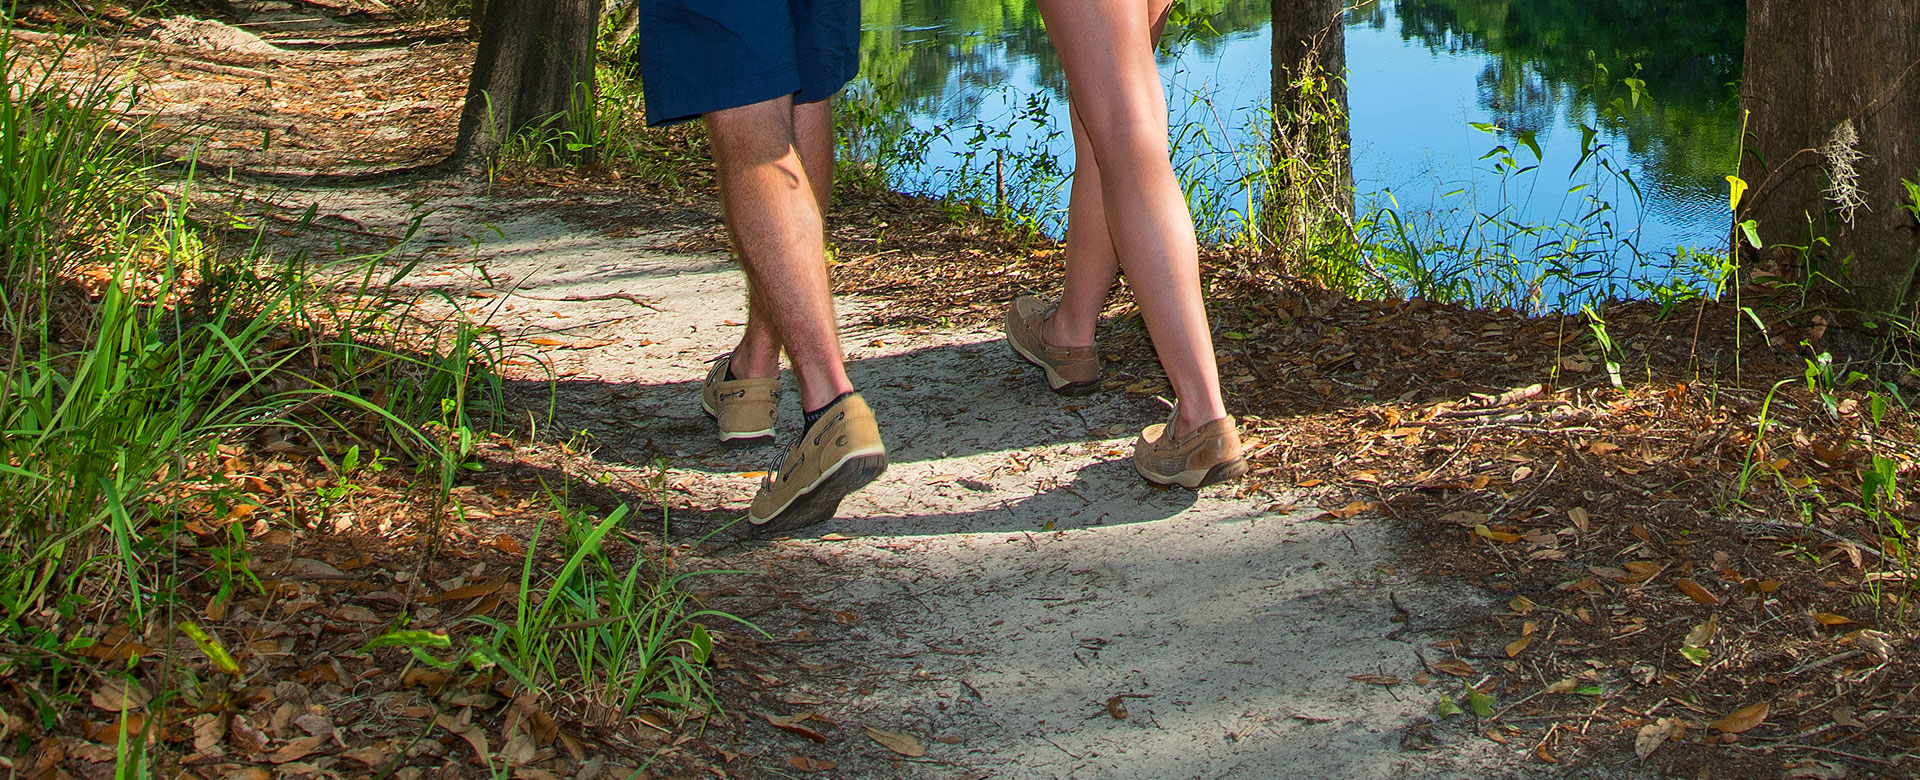 Lower legs of couple hiking by river